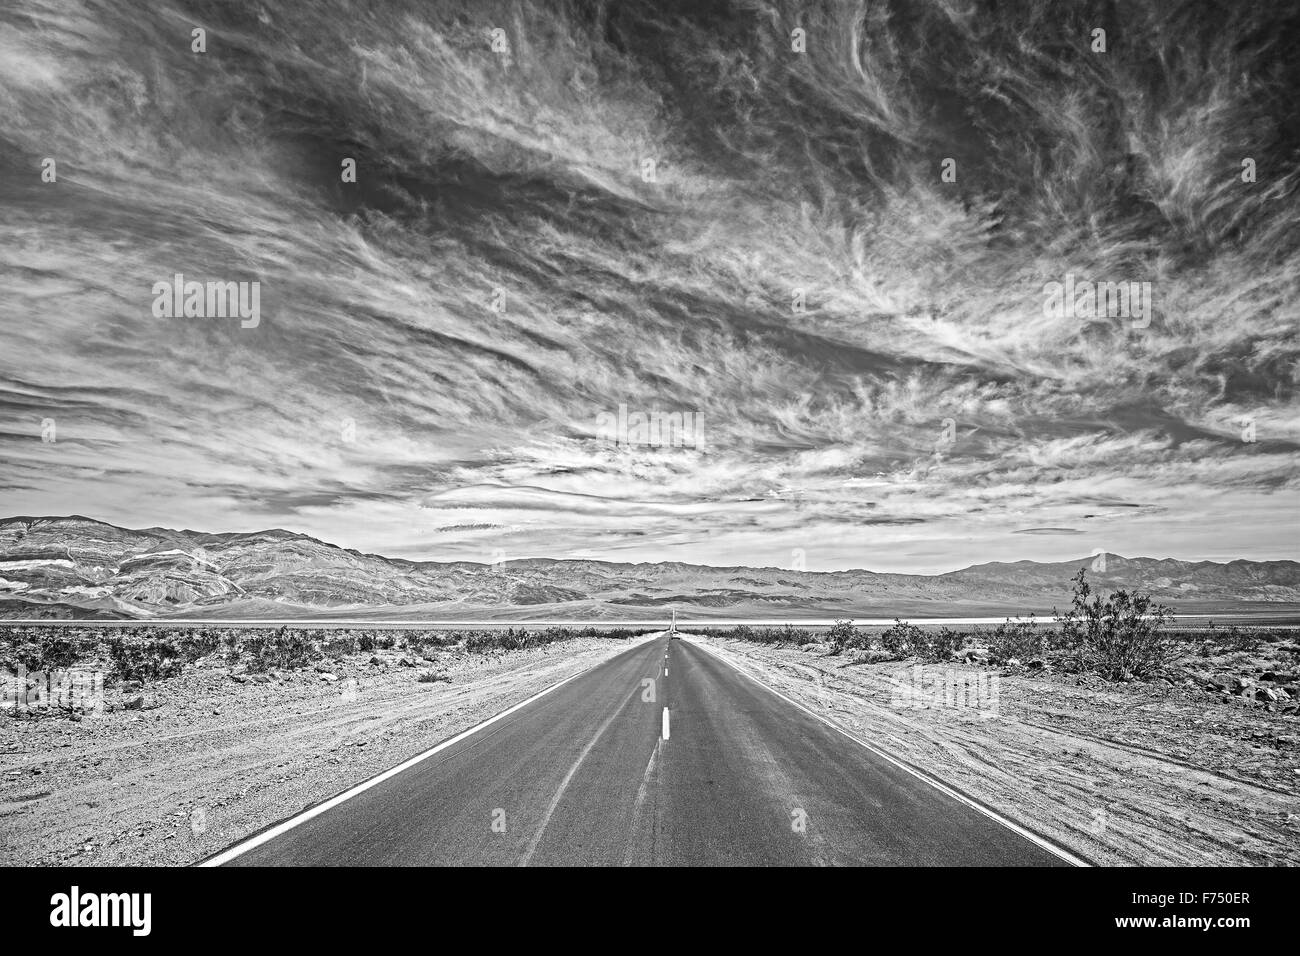 Black and white photo of a country highway in Death Valley, California, USA. - Stock Image